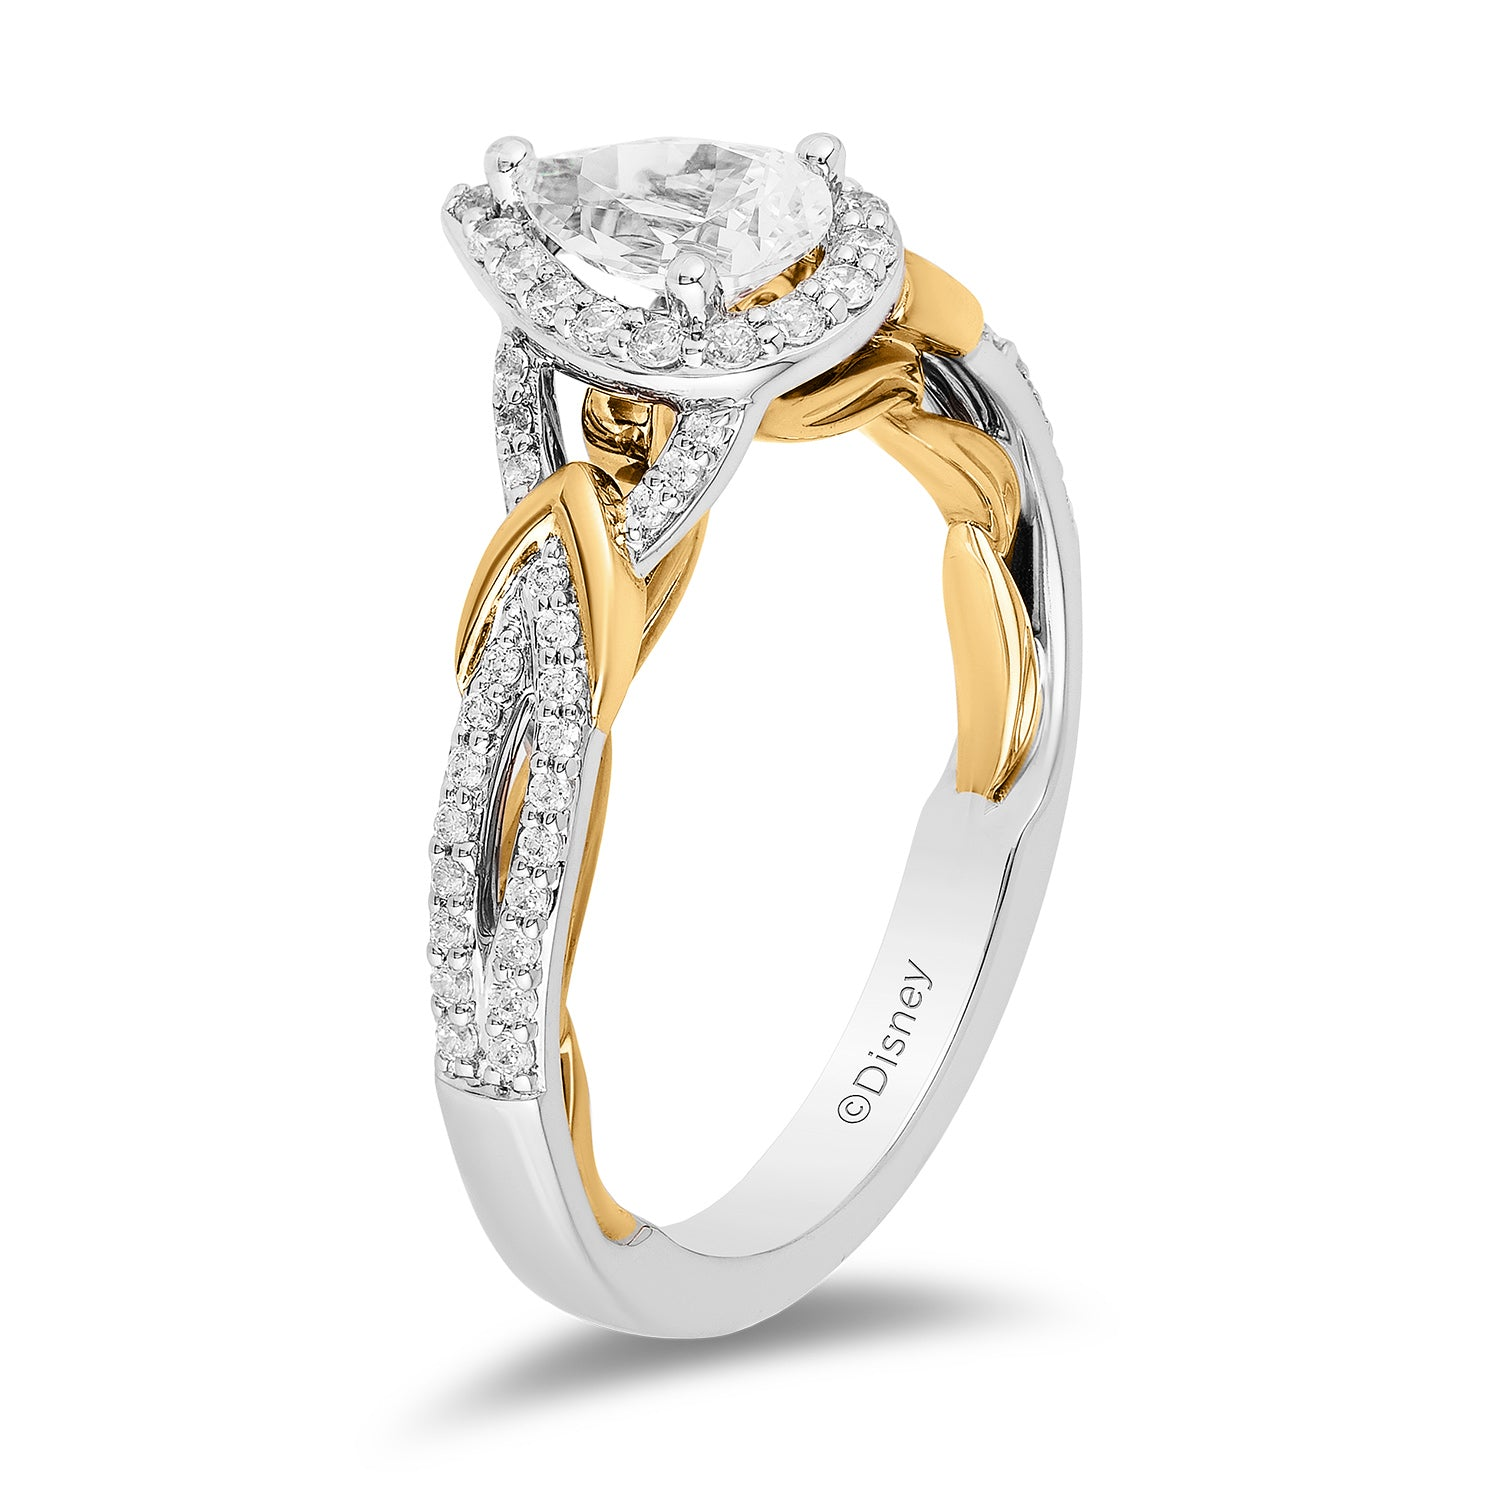 enchanted_disney-snow-white_engagement_ring_3/4CTTW_4